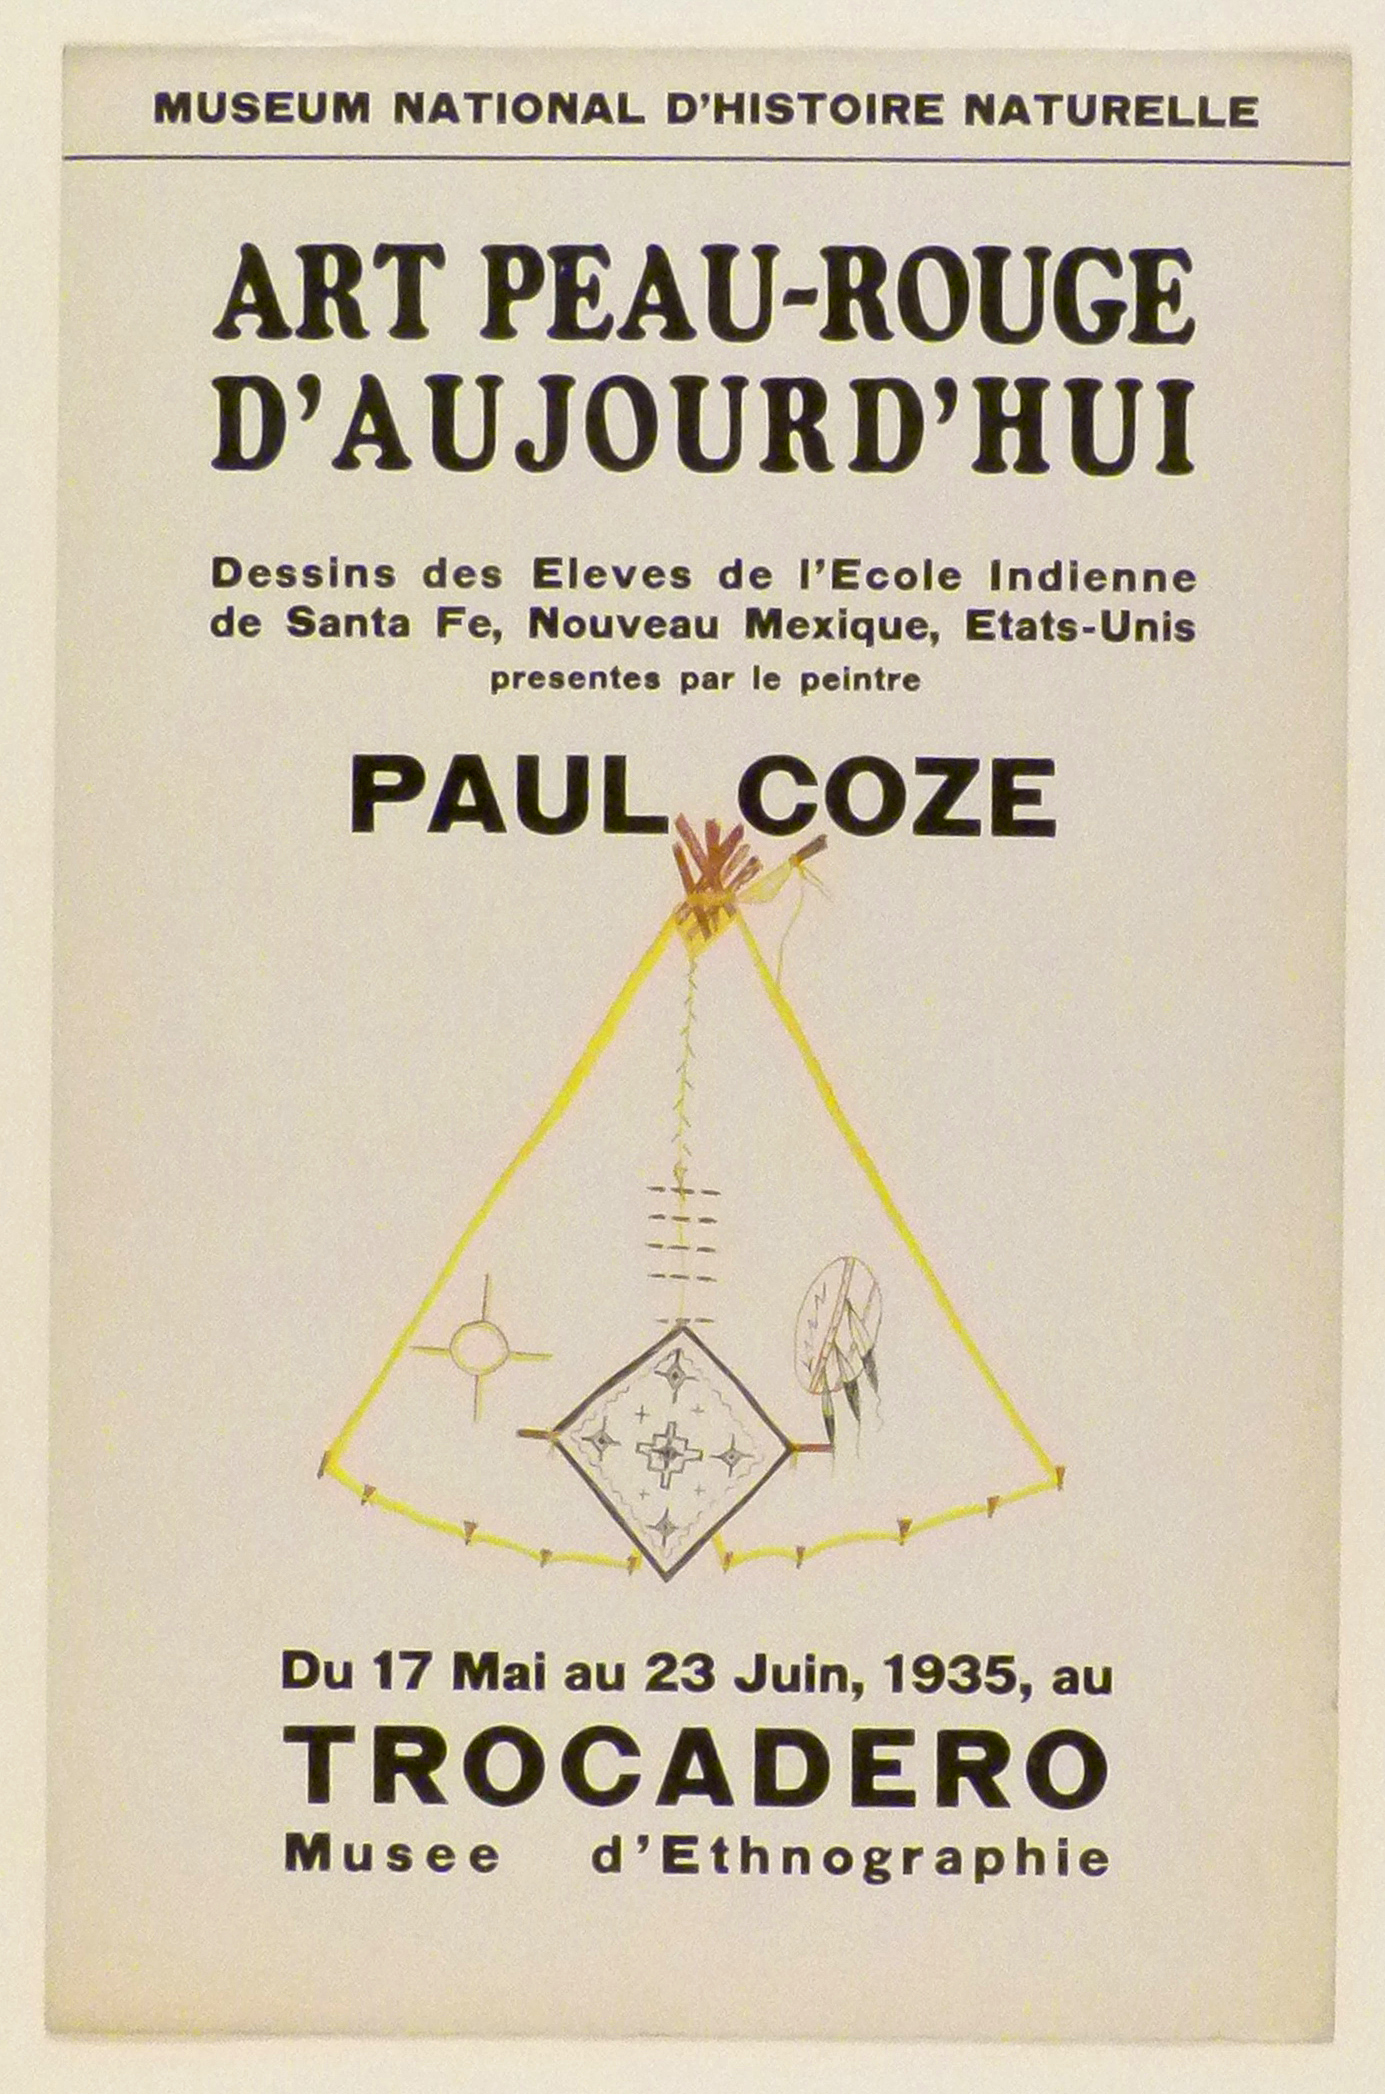 Art Exhibition Poster with painting of a tipi outlined in yellow, with various geometric designs in black and brown around the base.